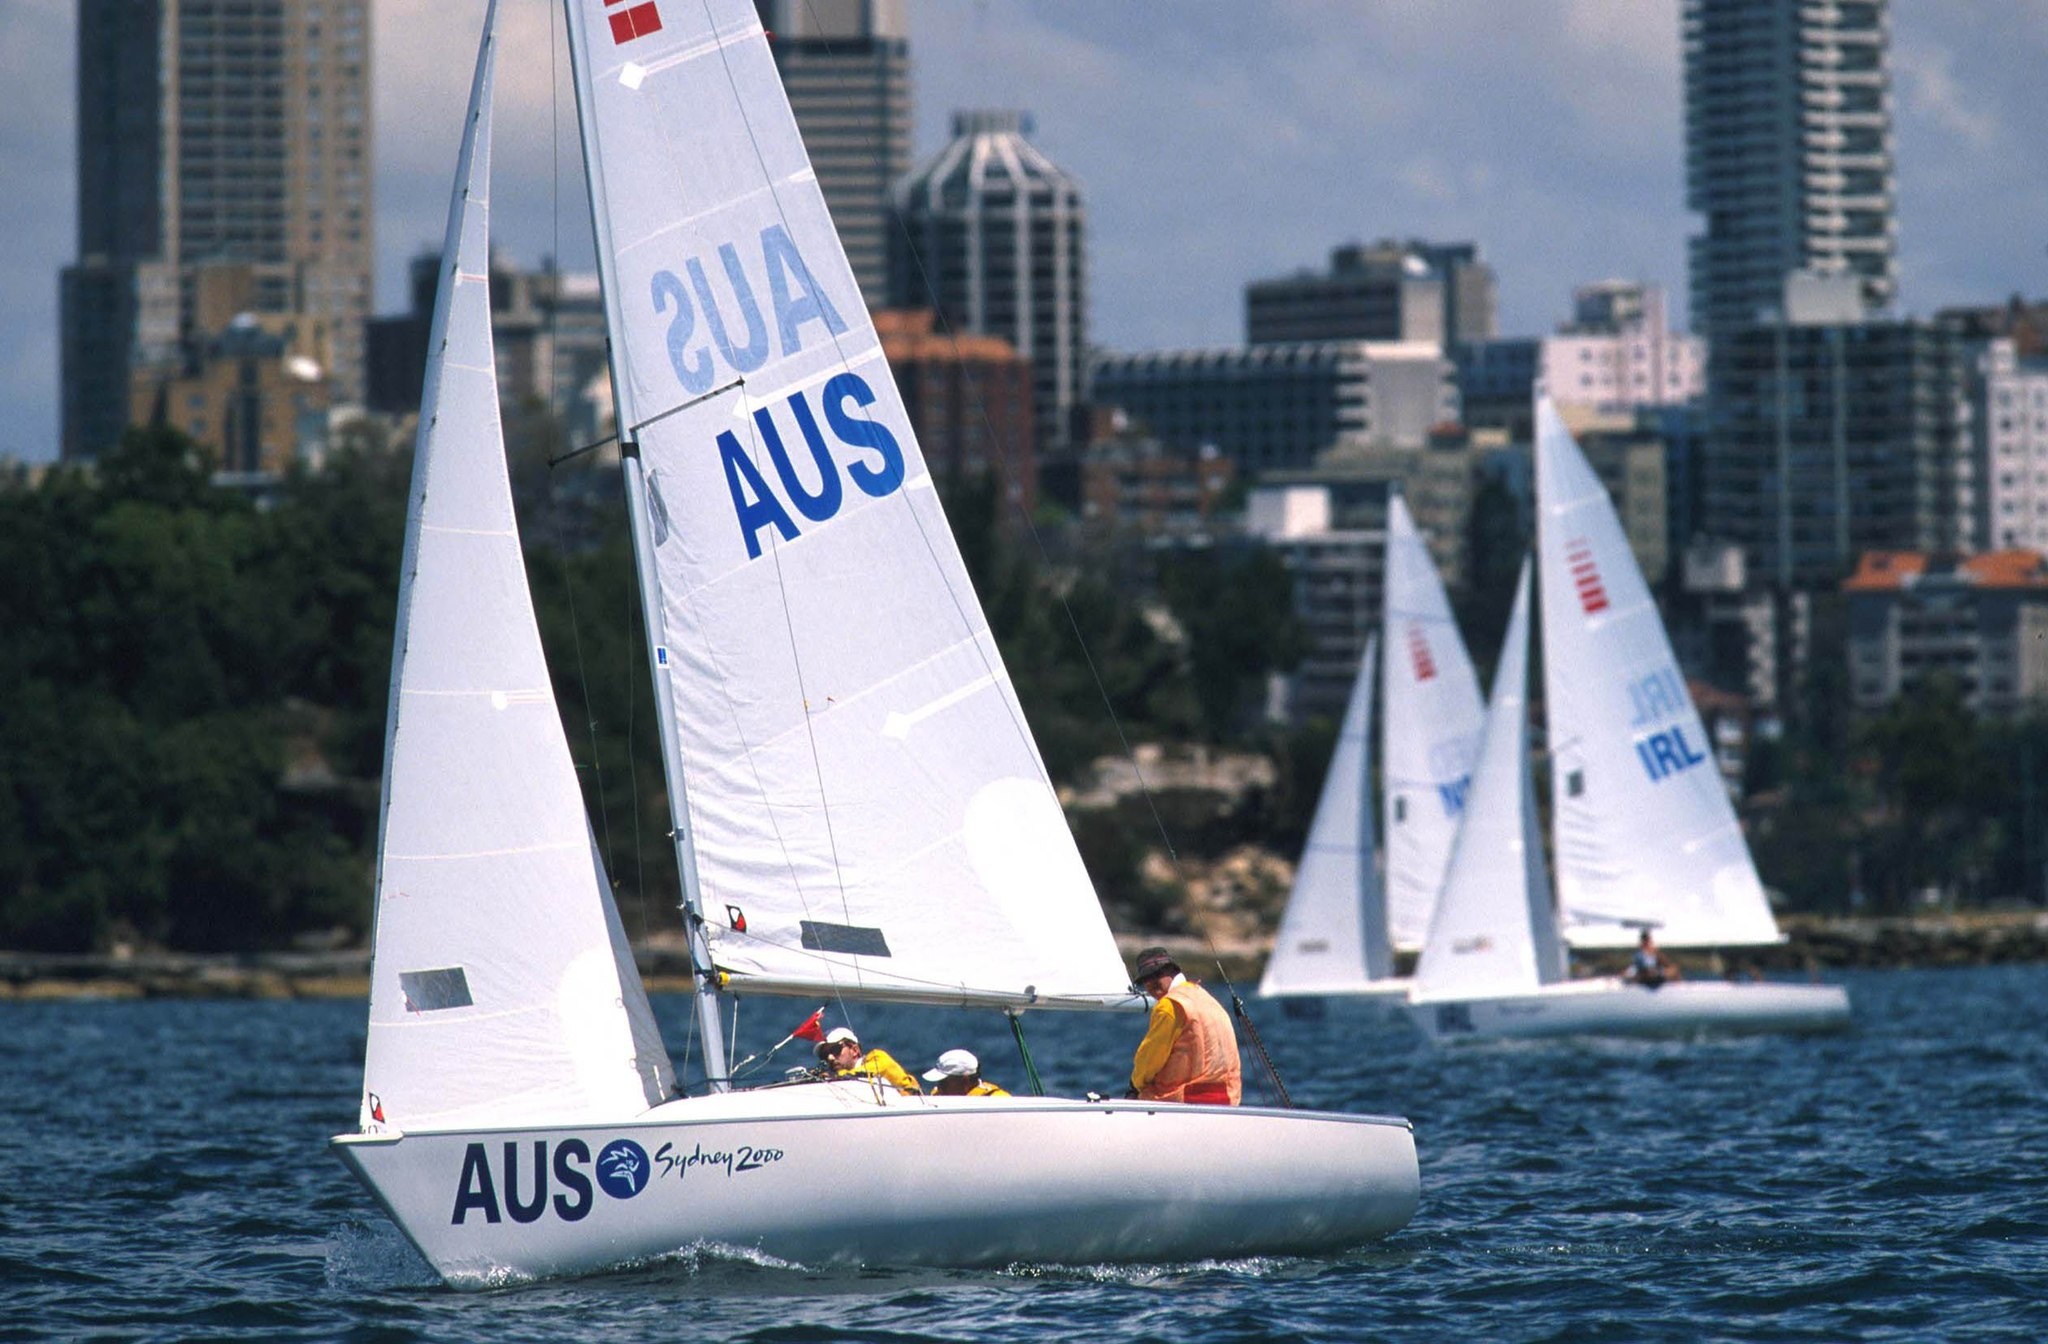 Australian sailors -Australian Paralympic Committee [CC BY-SA 3.0 (https://creativecommons.org/licenses/by-sa/3.0) or CC BY-SA 3.0 (https://creativecommons.org/licenses/by-sa/3.0)]